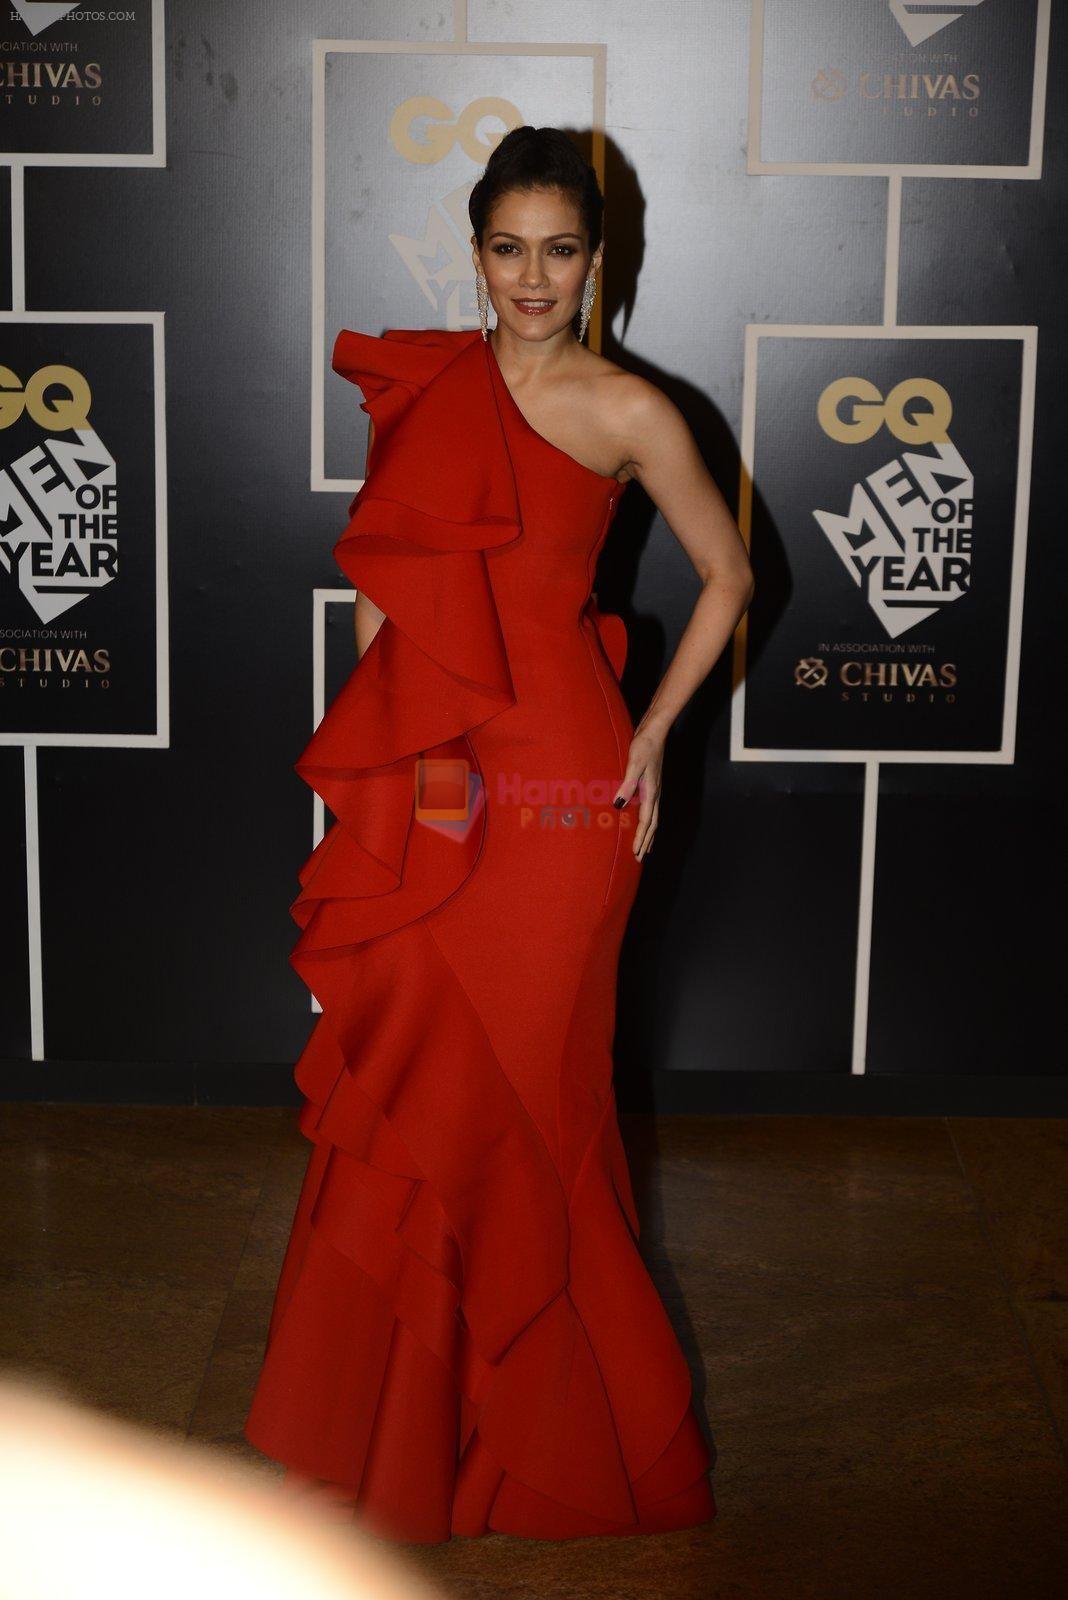 Waluscha de Sousa at GQ MEN OF THE YEAR on 27th Sept 2016